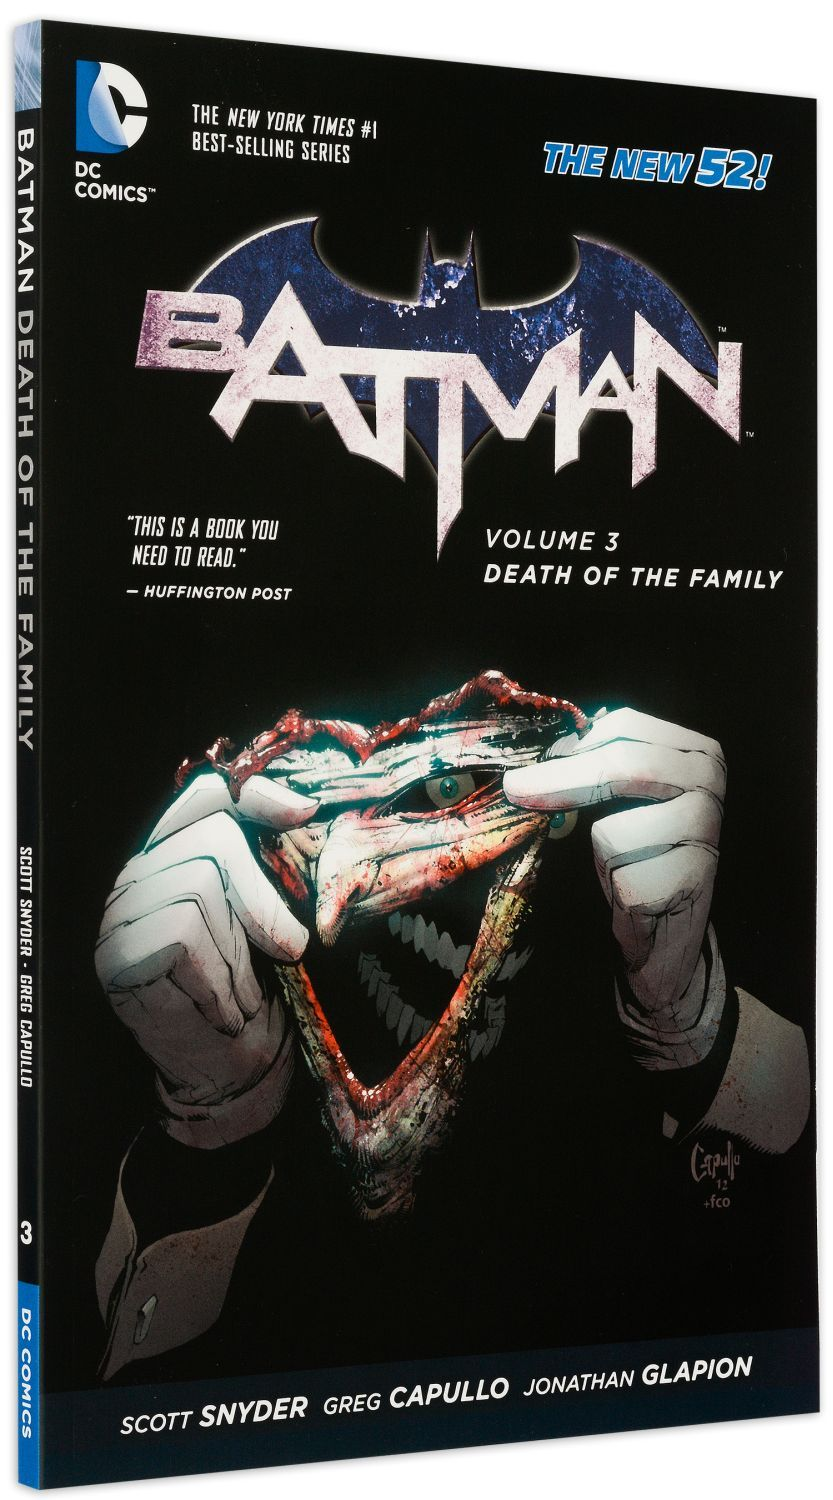 Batman Volume 3: Death of the Family (The New 52)-2 - 3